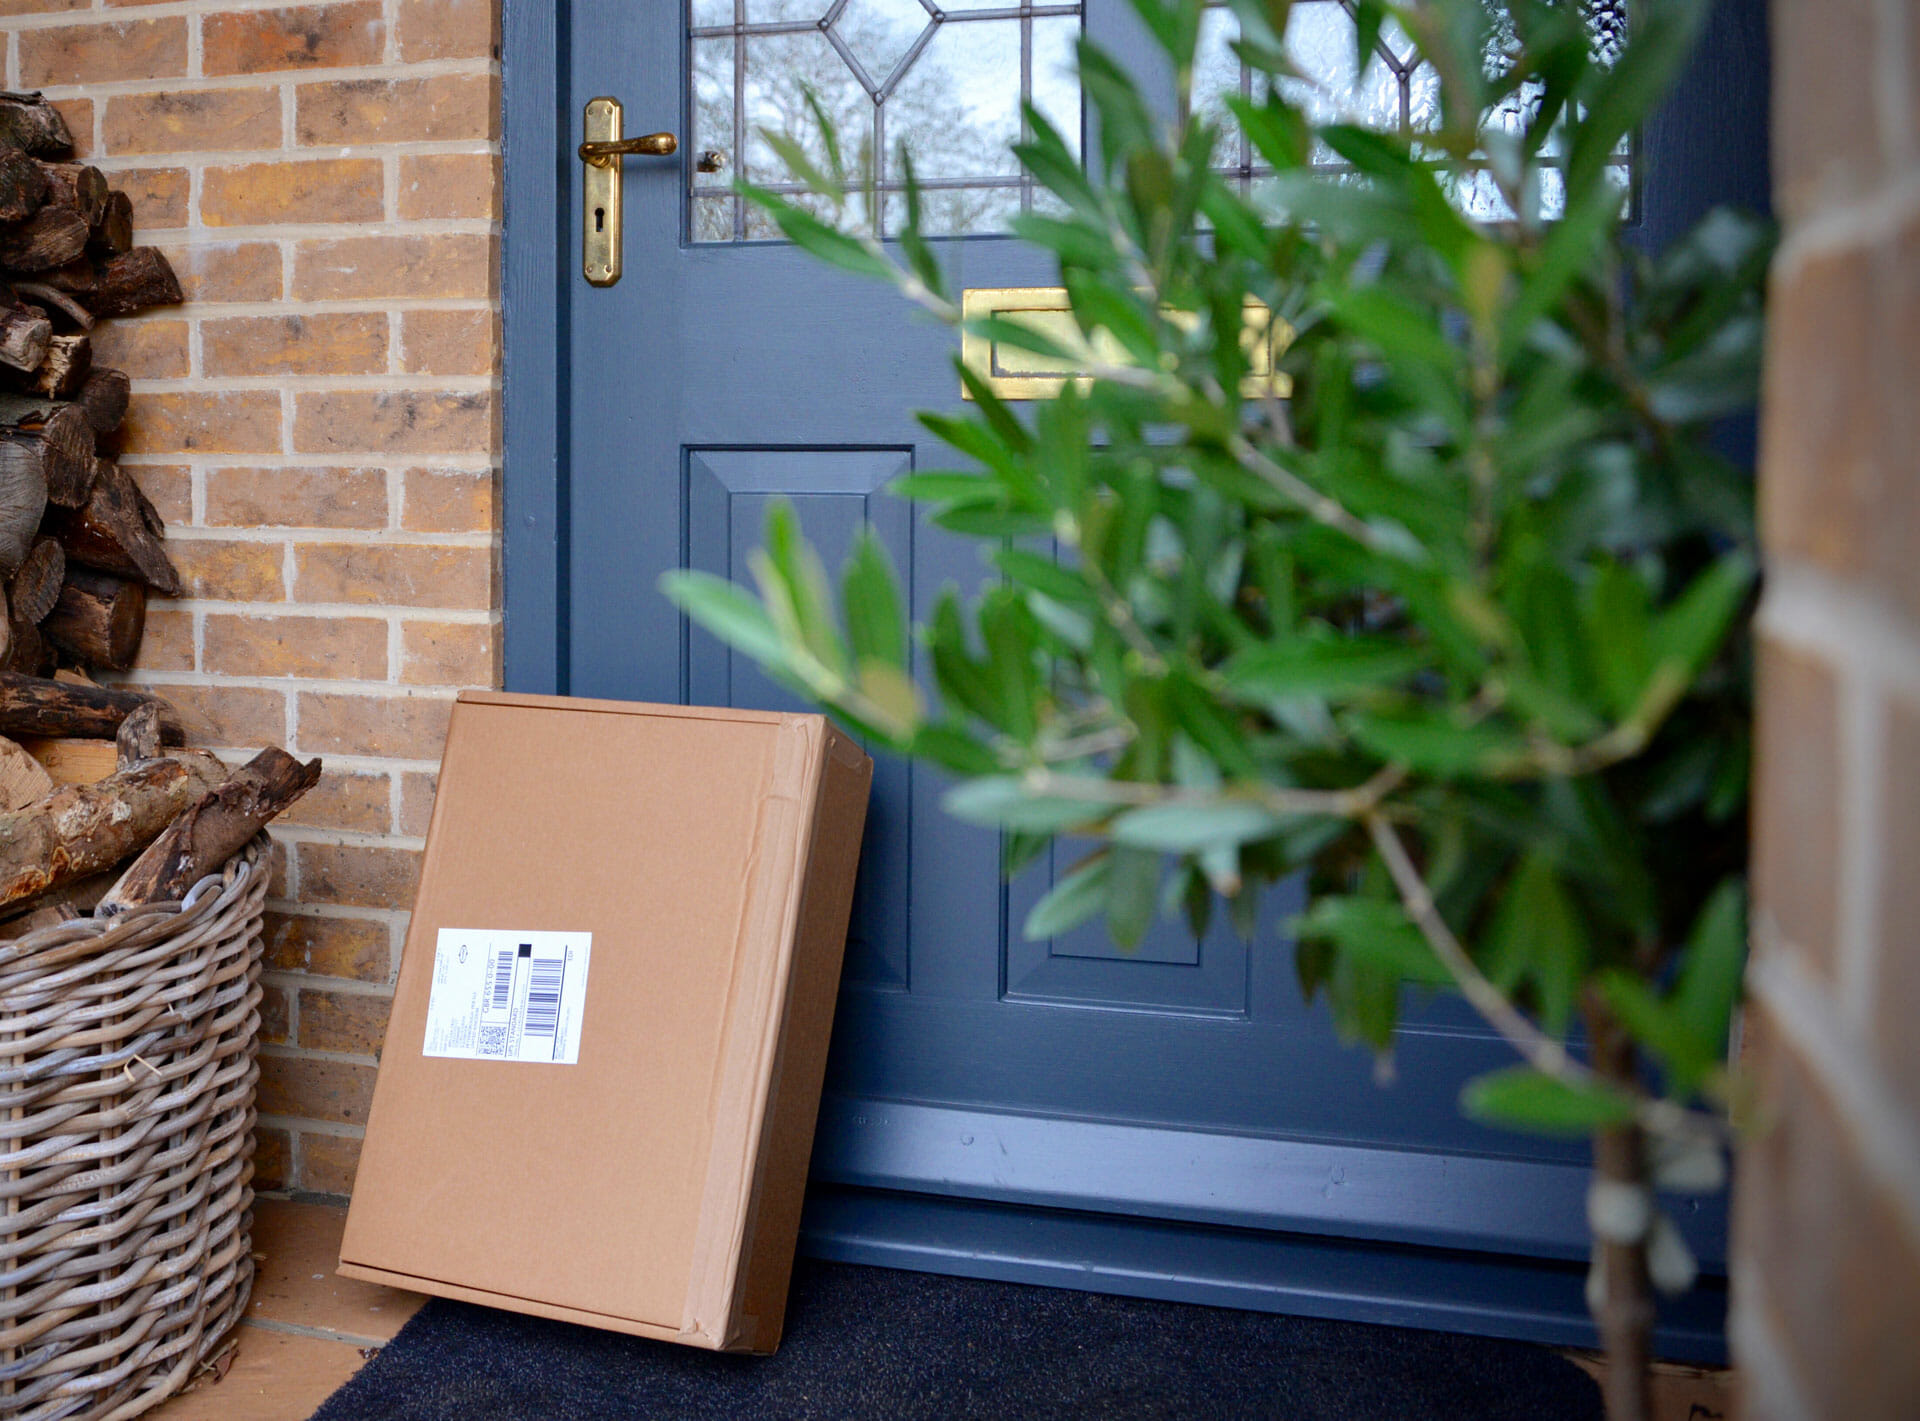 Package upright leaning against the front door of a house